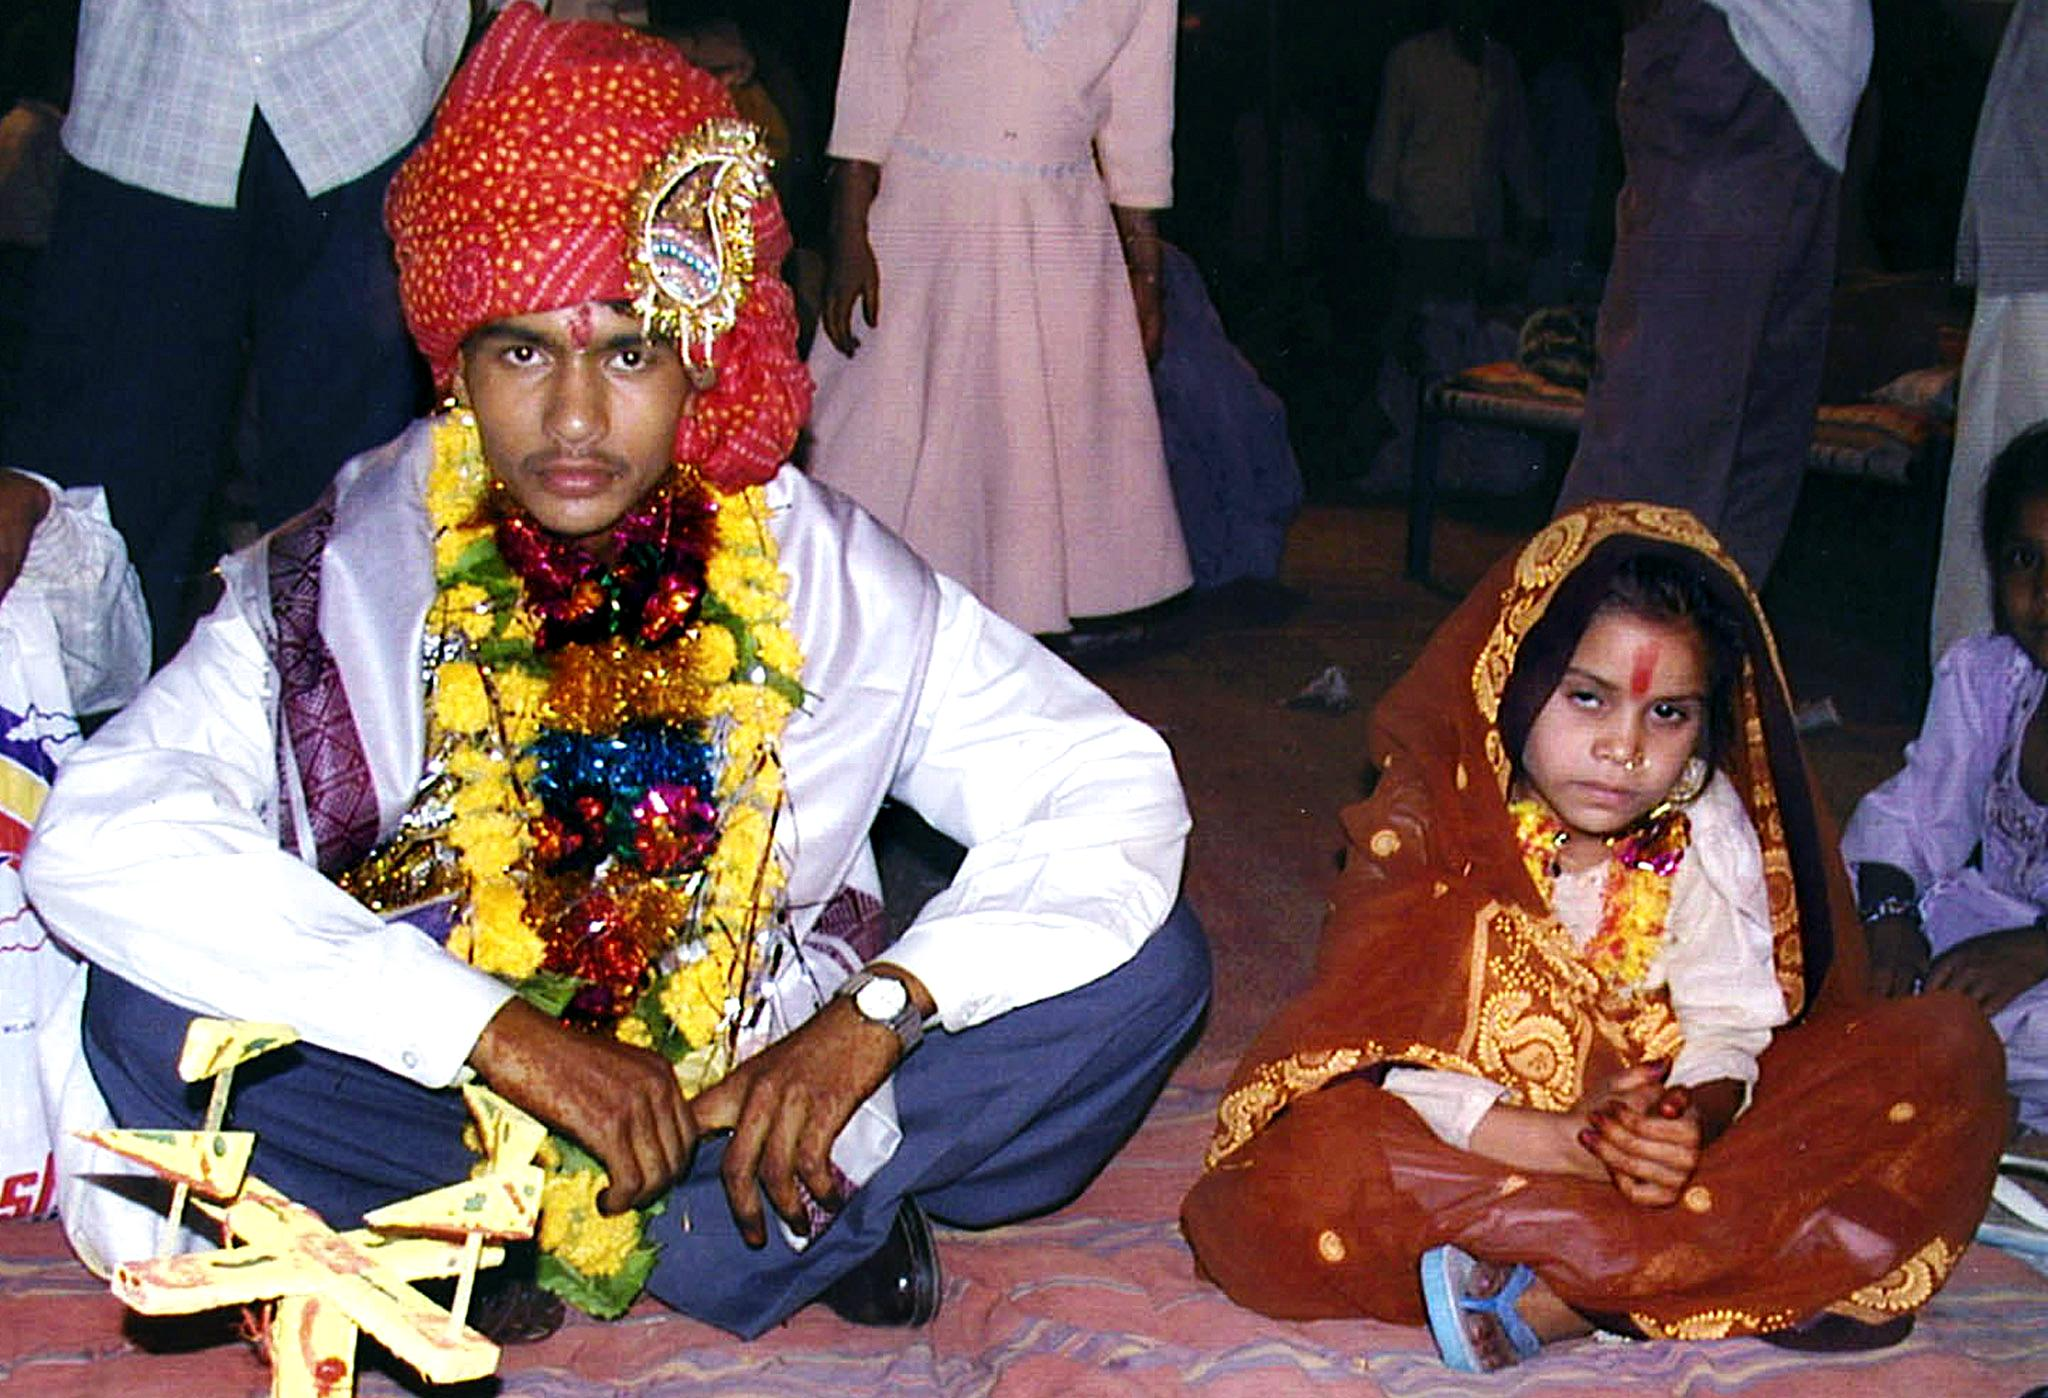 US Immigration Approved Thousands of Child Bride Requests